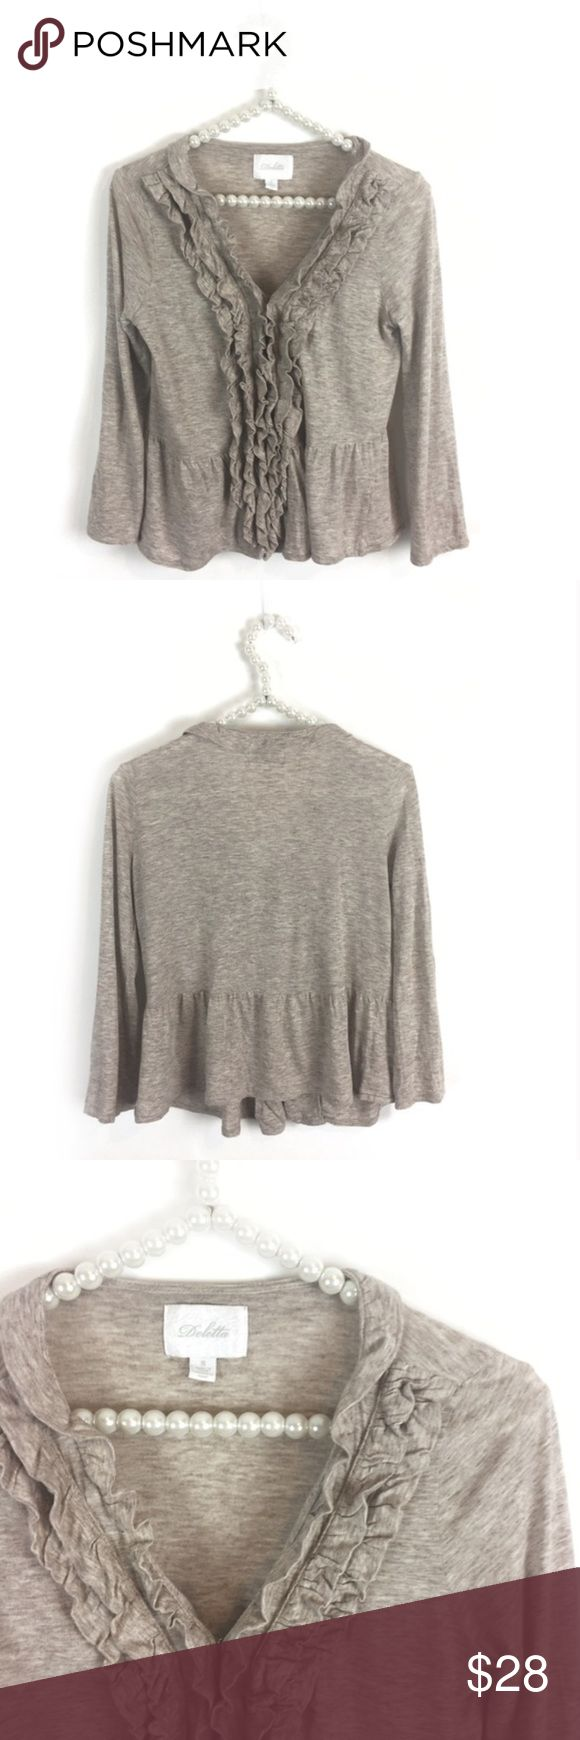 Anthropologie's Deletta Ruffled Peplum Cardigan Lightweight beige Ruffled Peplum Cardigan by Anthropologie's Deletta. Front hook & eye closures. (Small spots on front - I think from bleach in machine - in otherwise great condition). Size Small. Anthropologie Sweaters Cardigans